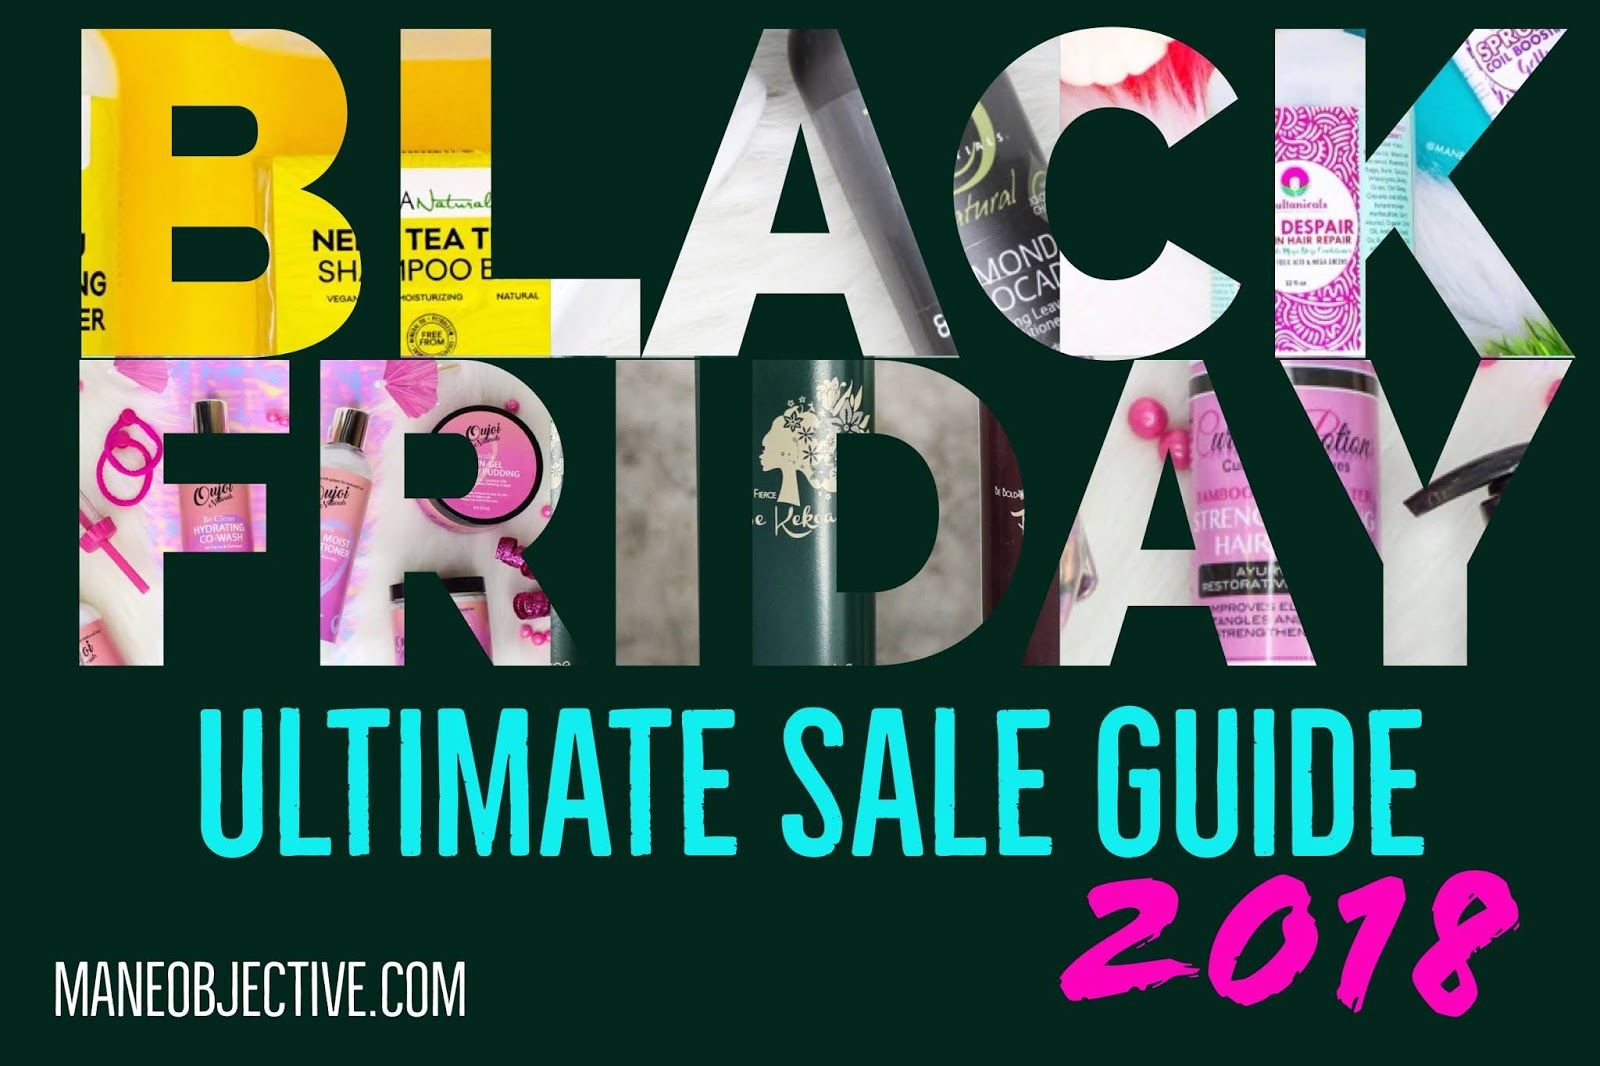 2018 Ultimate Black Friday Small Business Saturday Cyber Monday Natural Hair Skincare Home Sale Guide